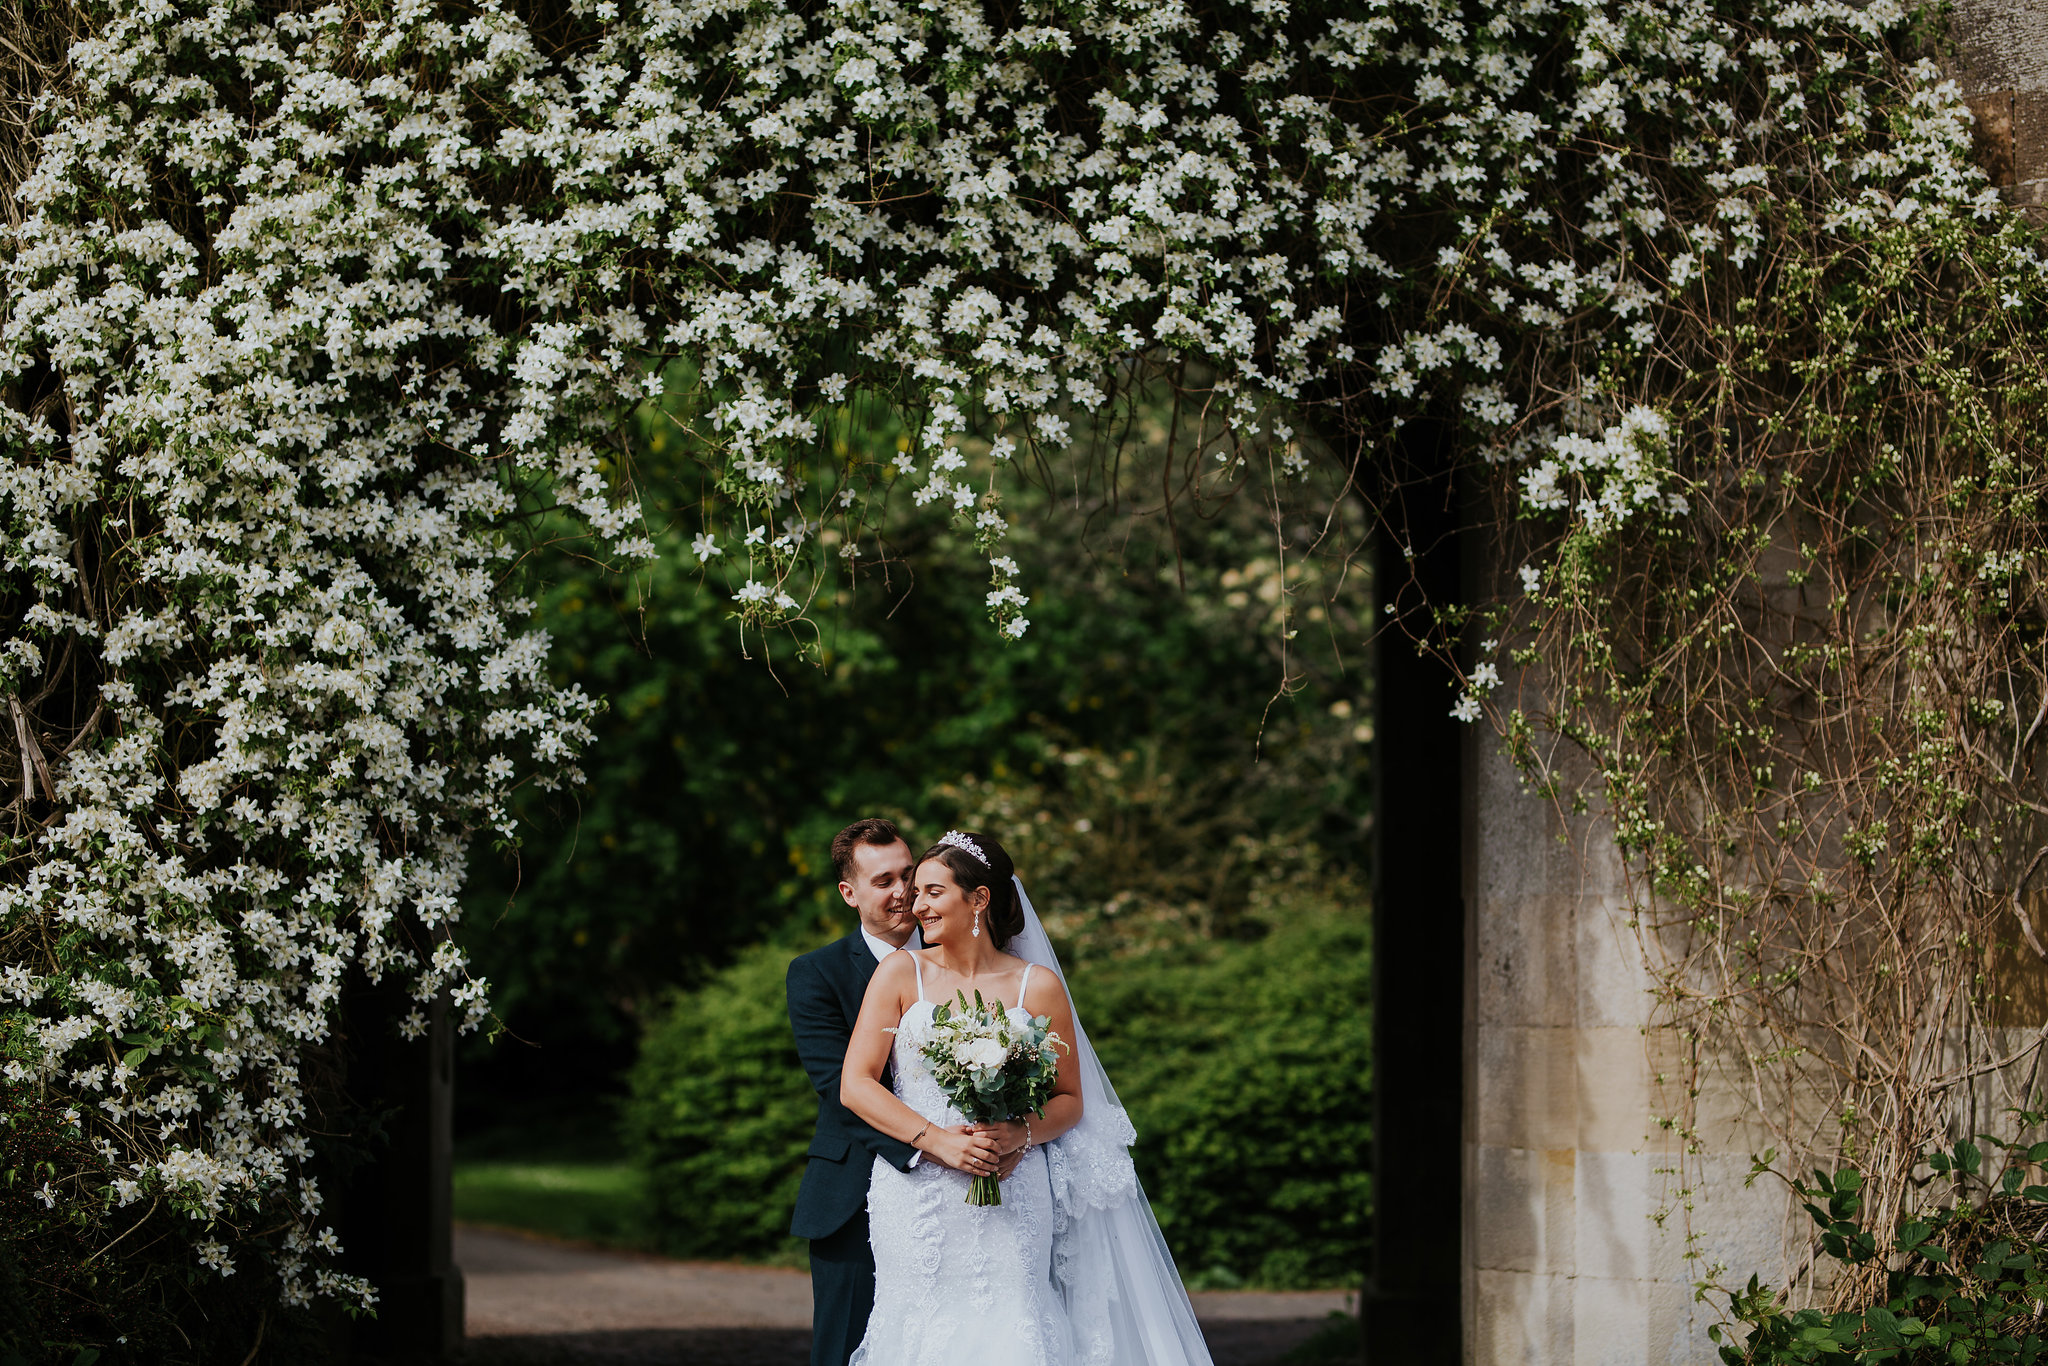 Duns_Castle_wedding_photographer_ross_alexander_photography (73).jpg